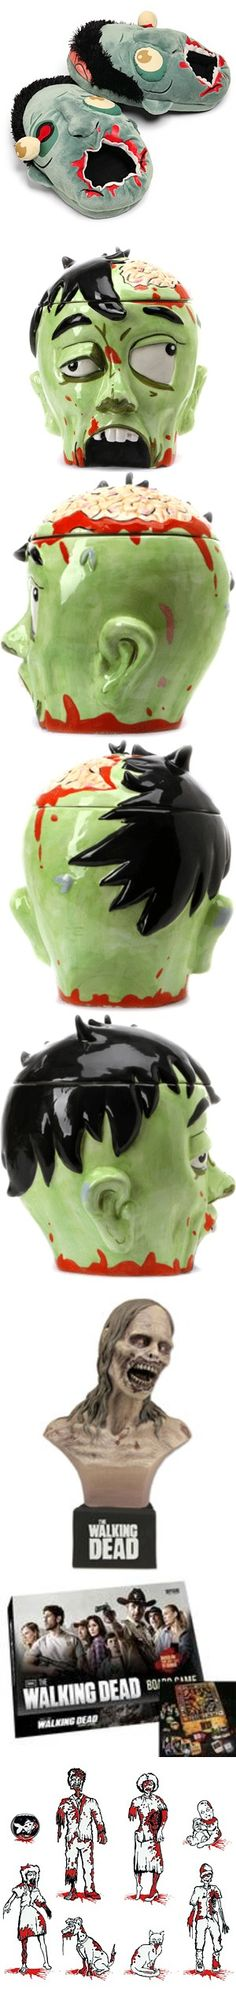 Looking for a gift for your favorite zombie (or Walking Dead) fan? Mmmm, brains.